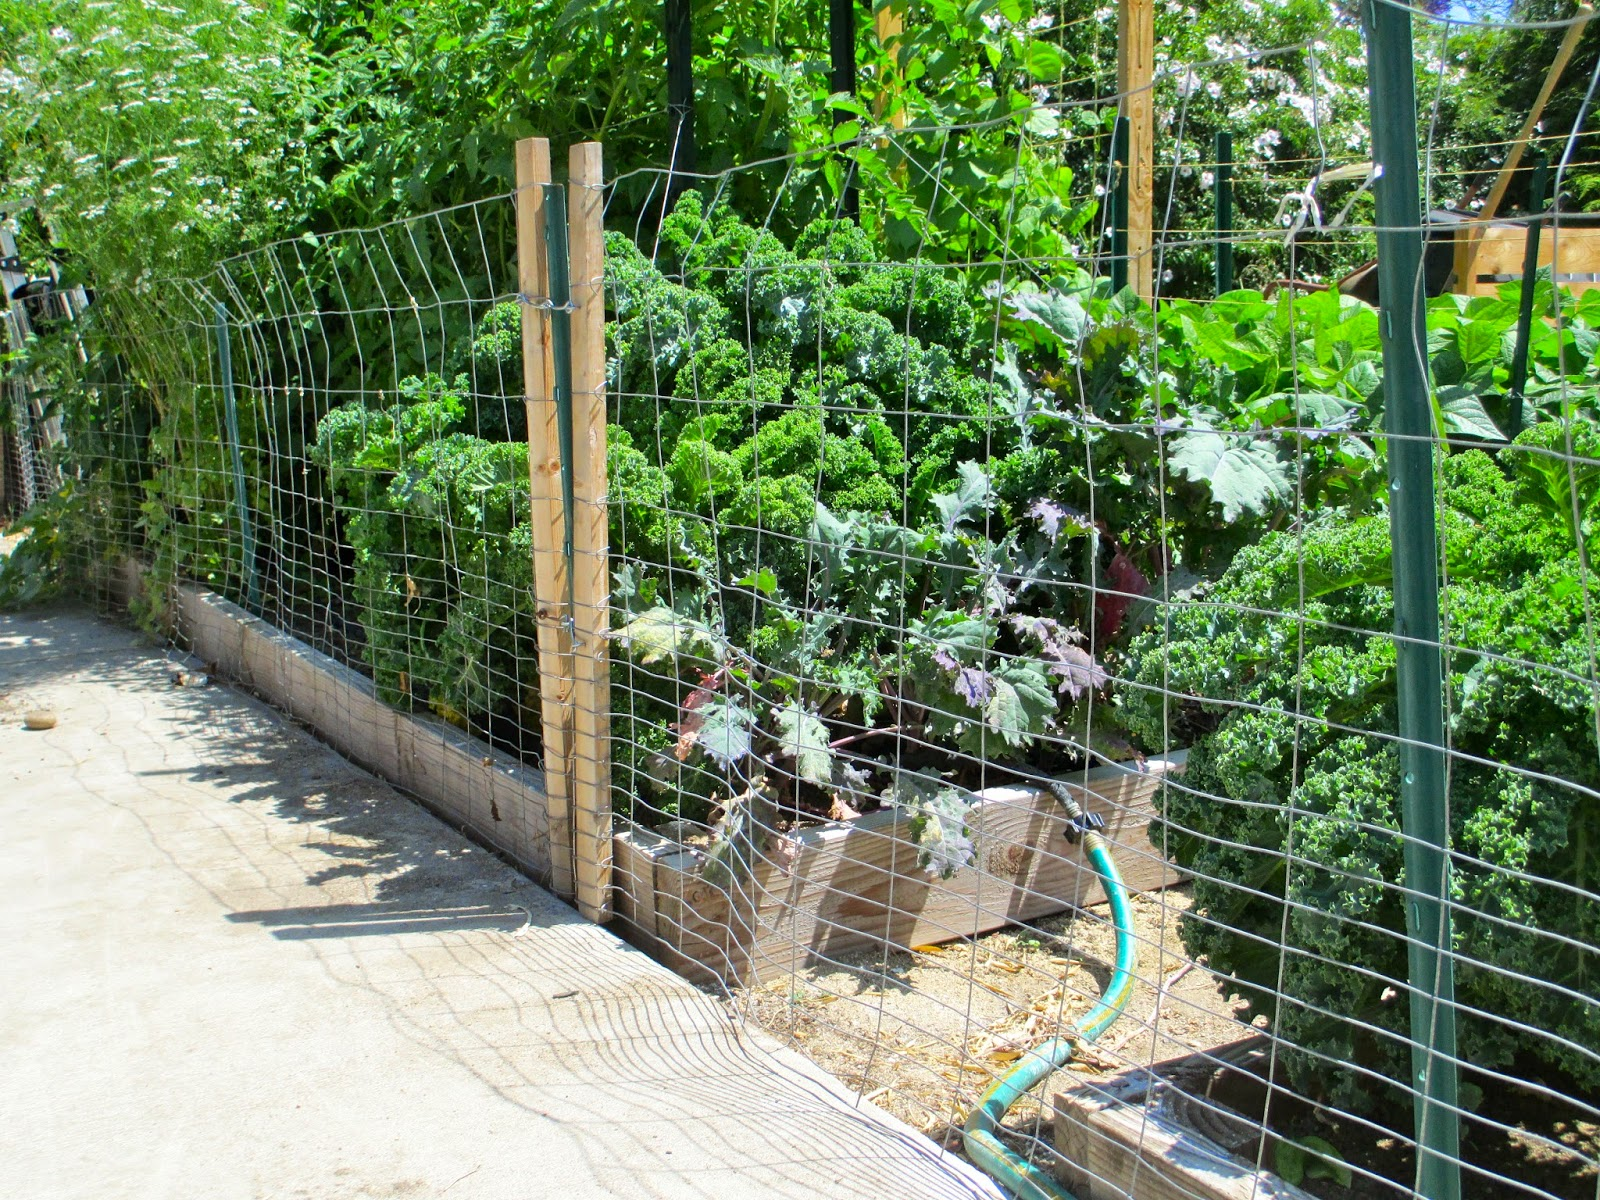 Ordinaire Fence And Simple Gates   Removes Easily For Gardening   Andieu0027s Way